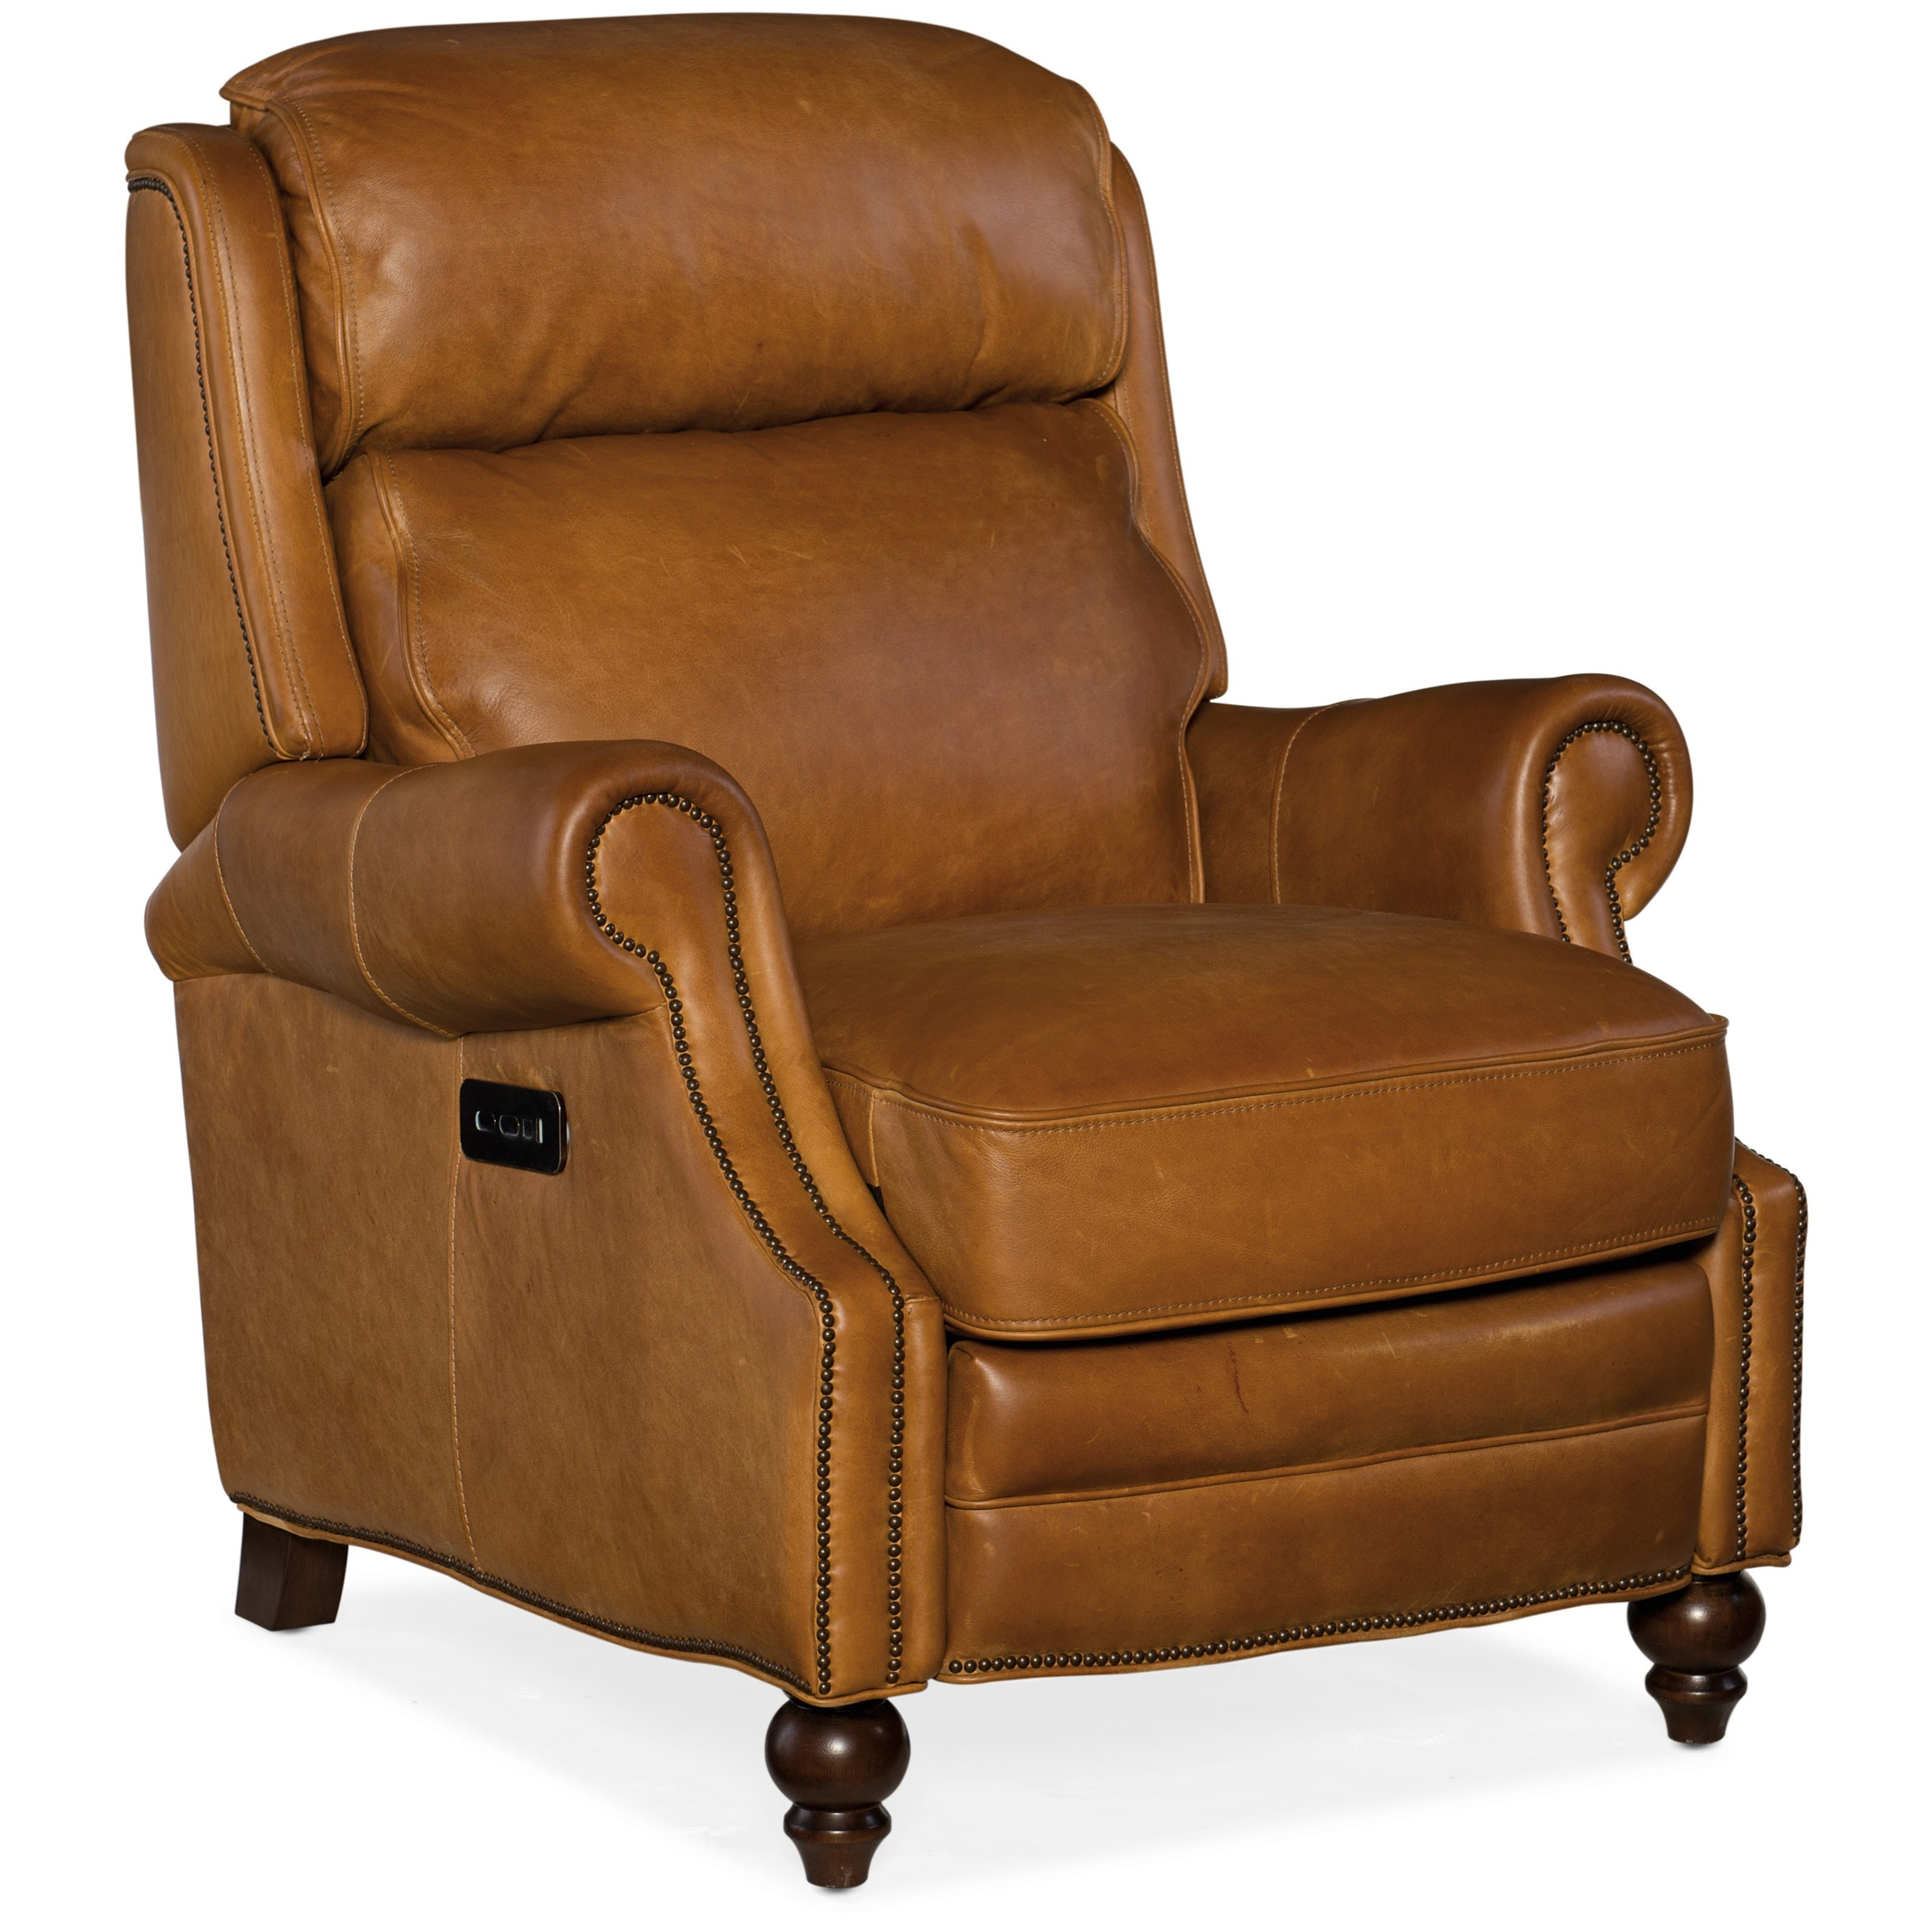 Reclining Chairs Power Recliner with Power Headrest by Hooker Furniture at Baer's Furniture